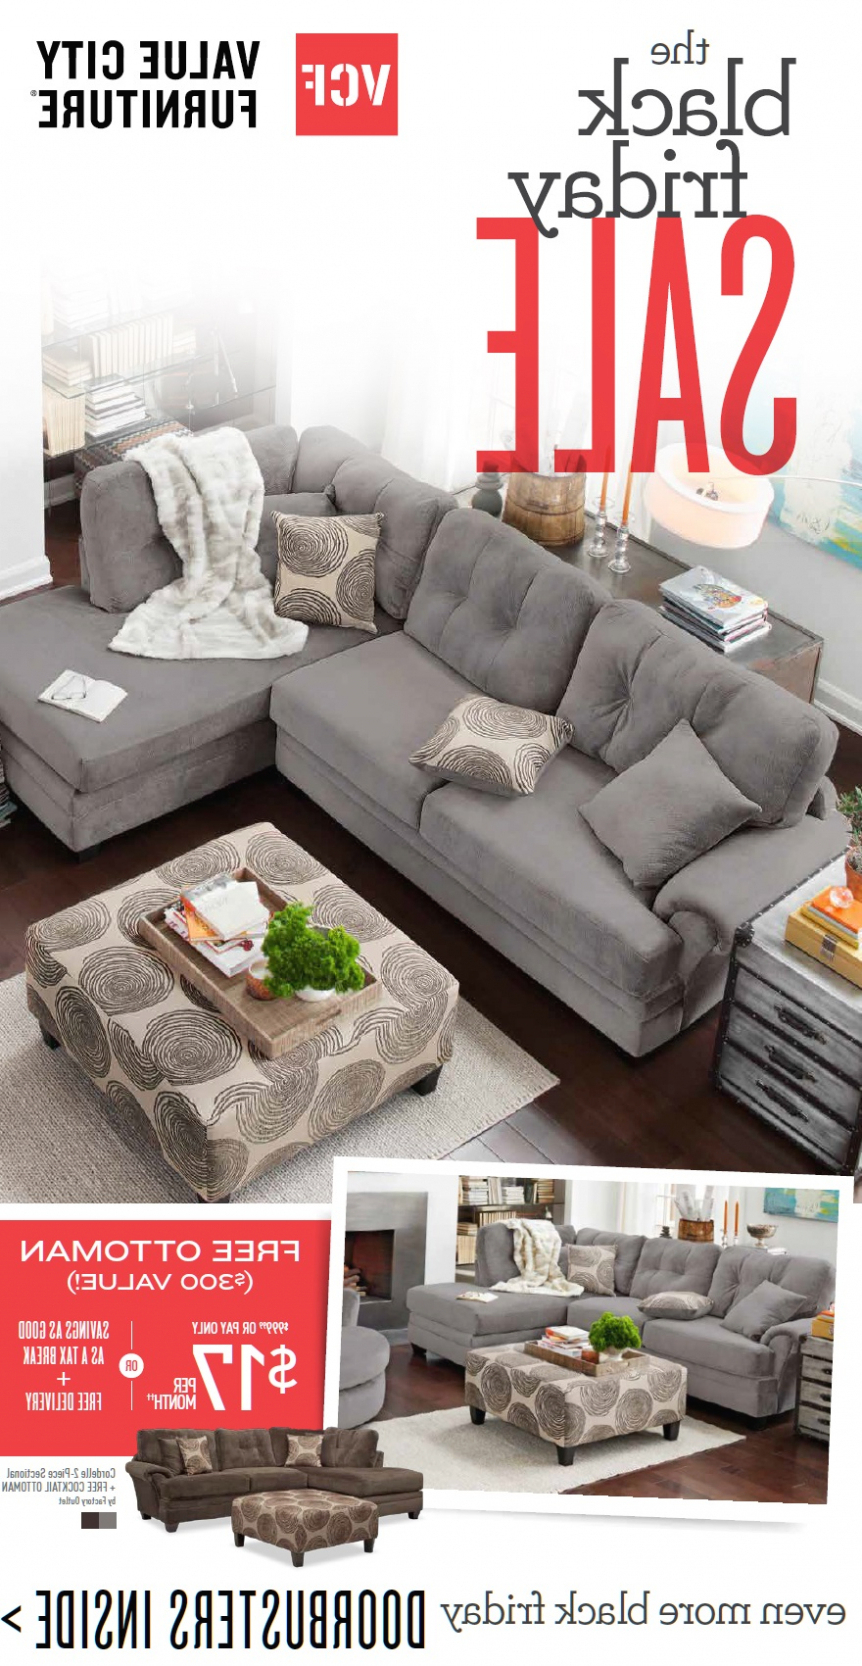 Sofa Black Friday 9fdy Beautiful Black Friday Couch 35 with Additional sofas and Couches